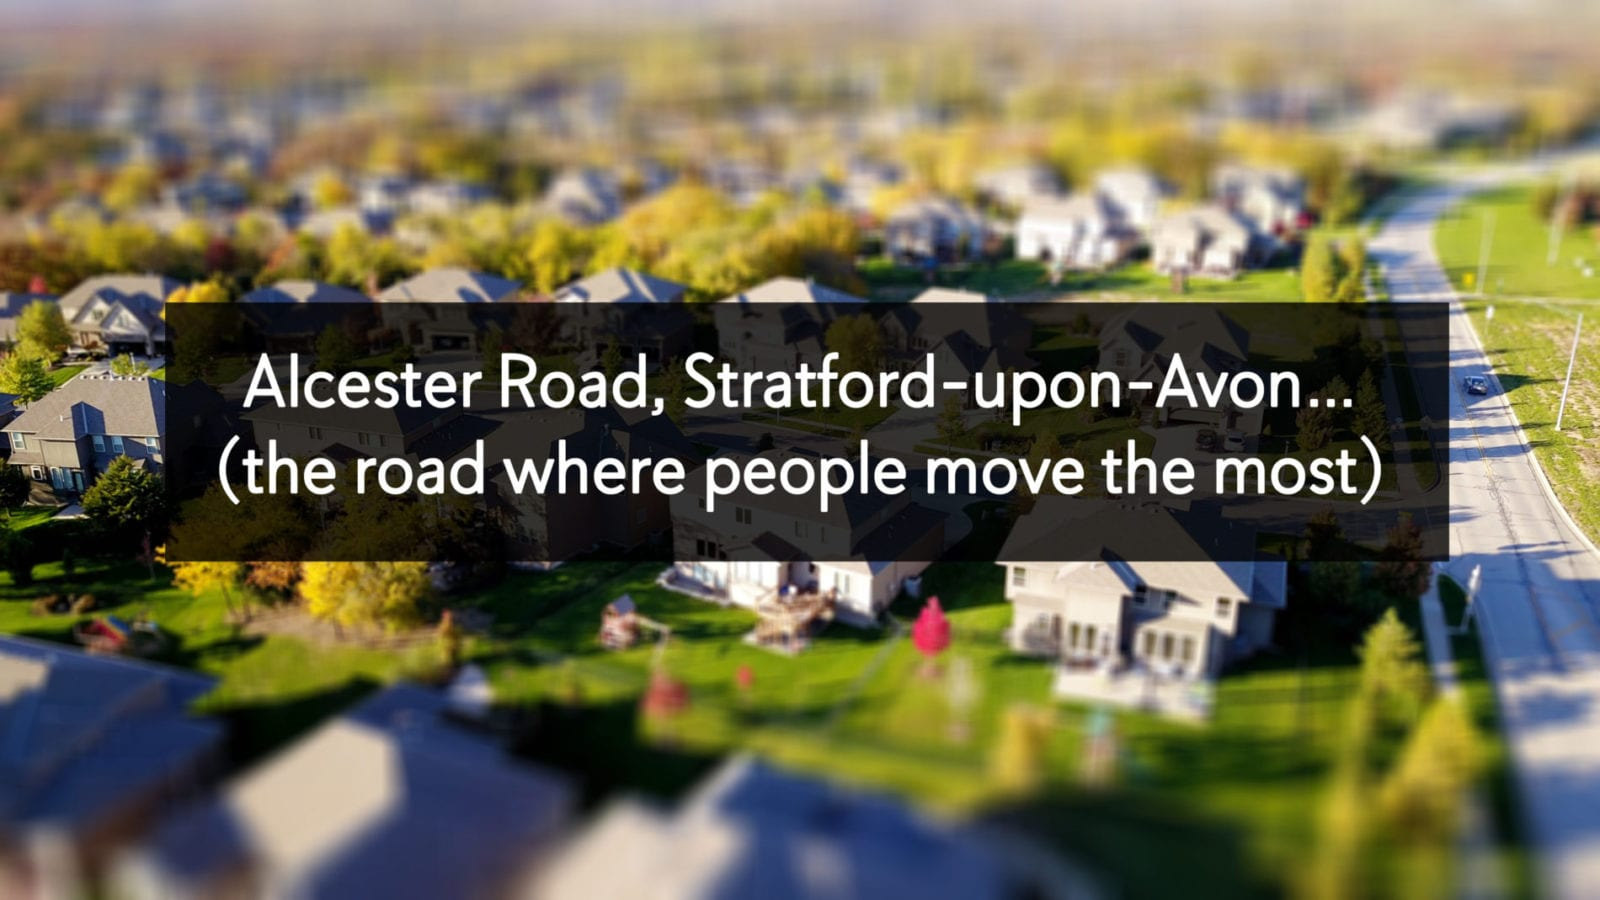 Alcester Road, Stratford-upon-Avon…(the road where people move the most)